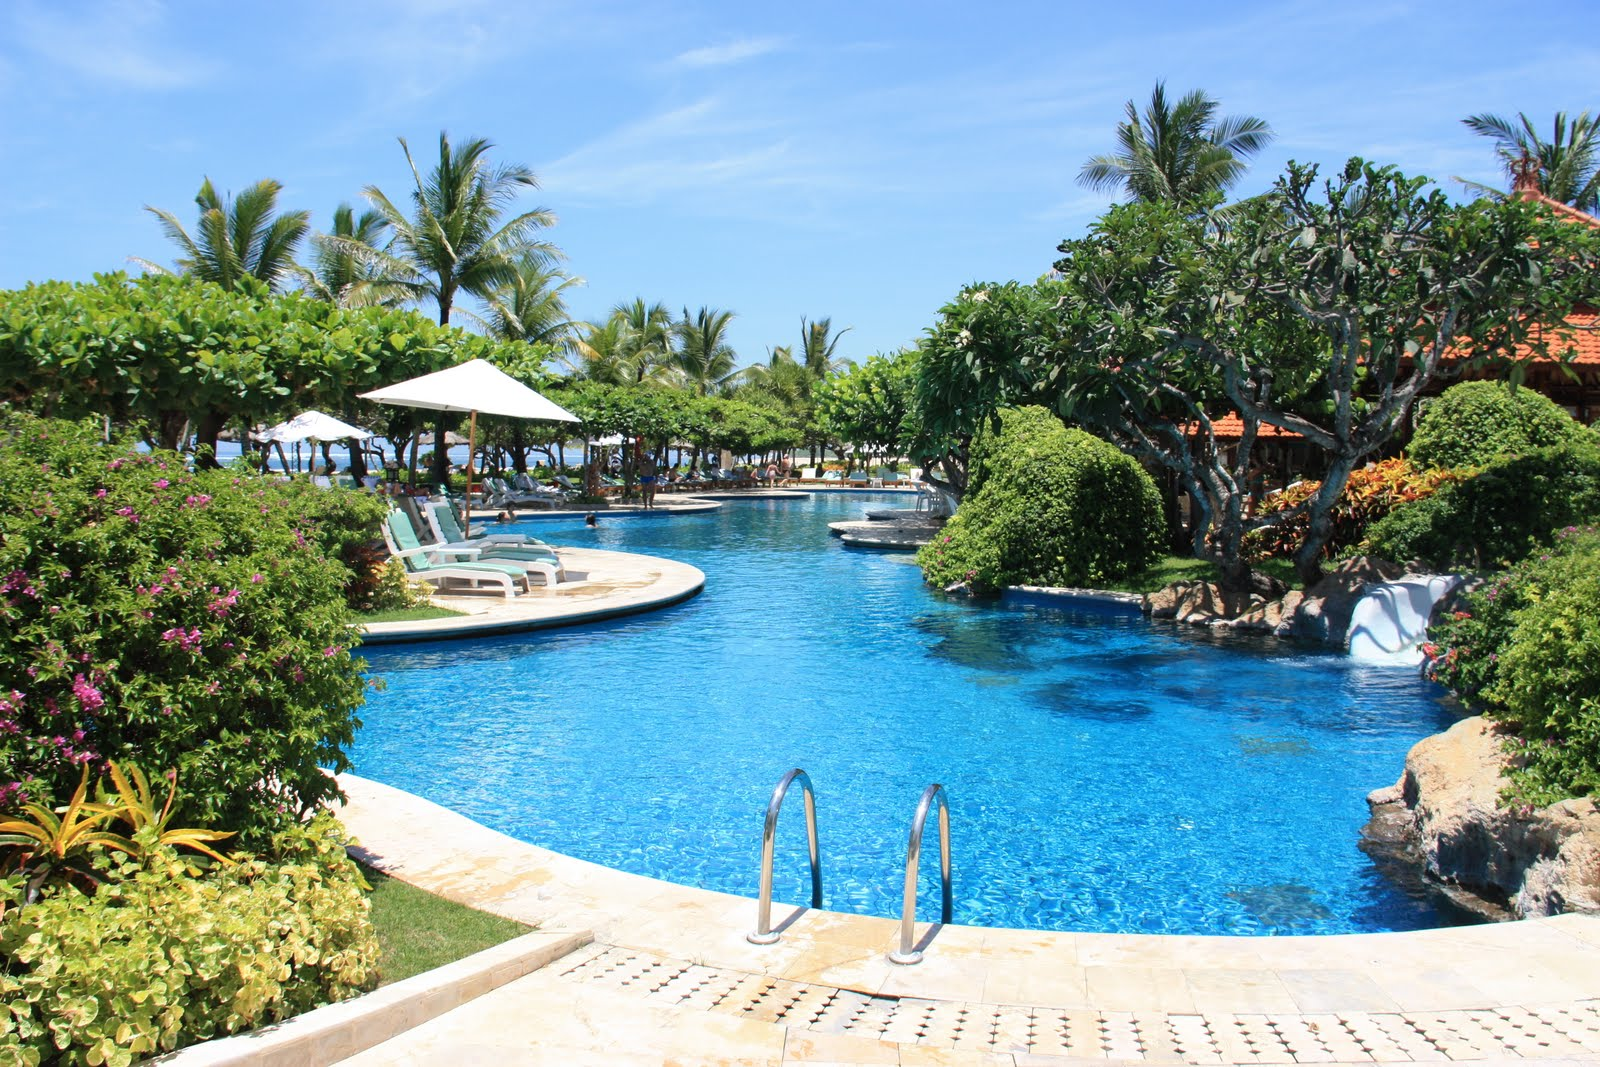 Direct Tv Internet Reviews >> Bali Hyatt Resort Sanur - HOTELS - Bali direct via bali ...